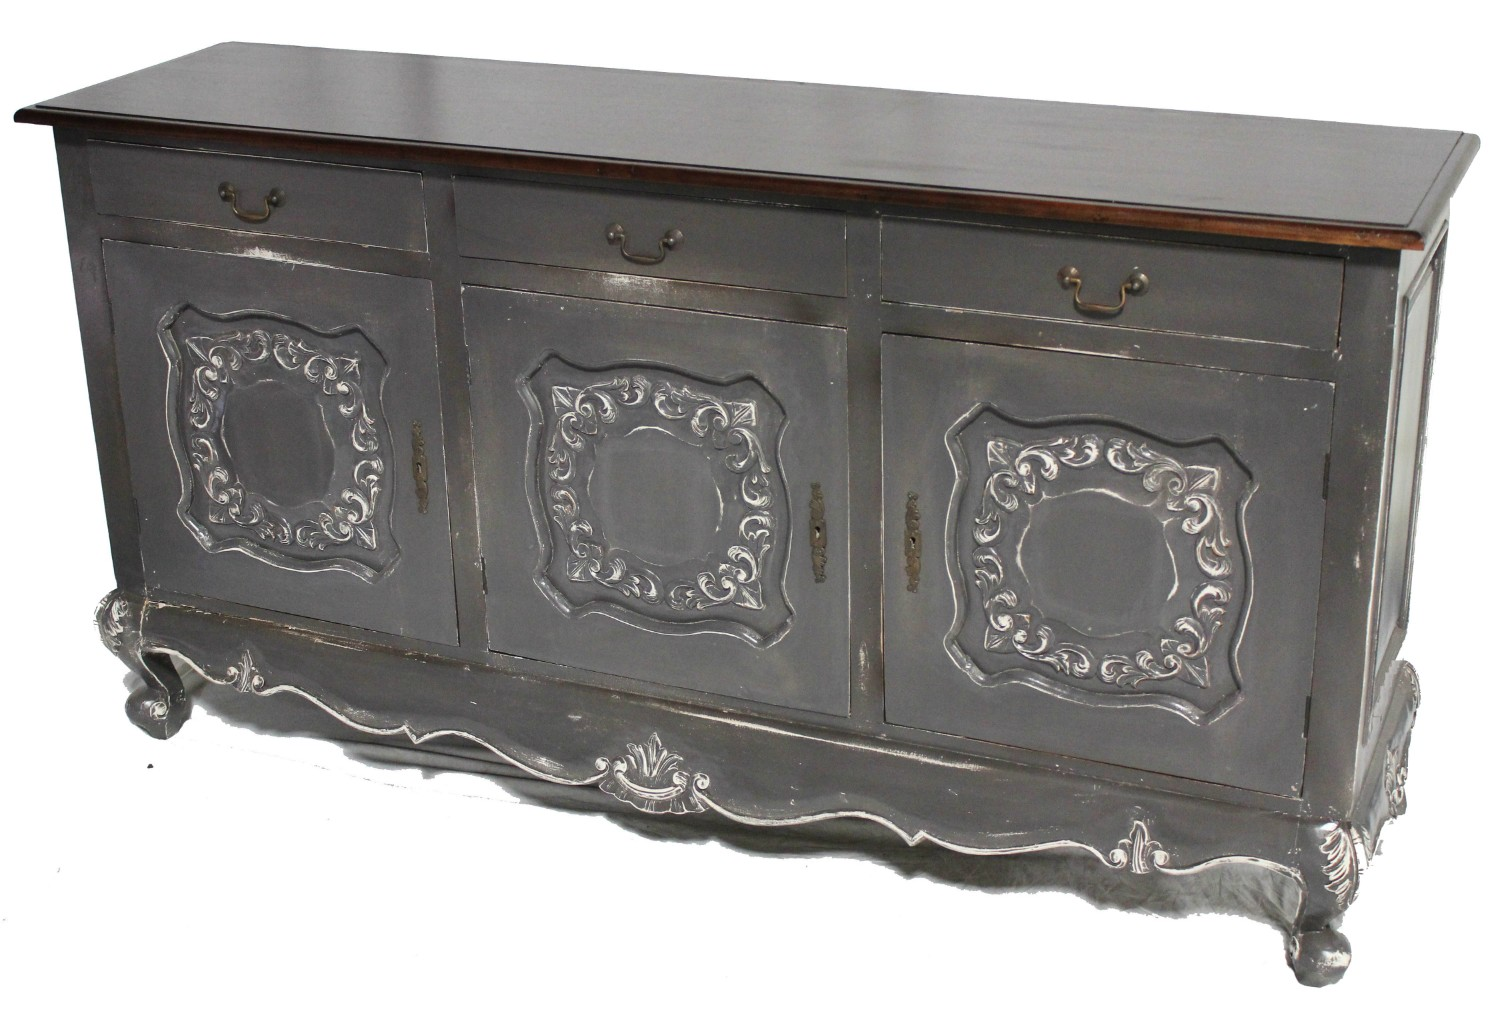 Country french 3 door sideboard black brown white or for French country furniture catalog